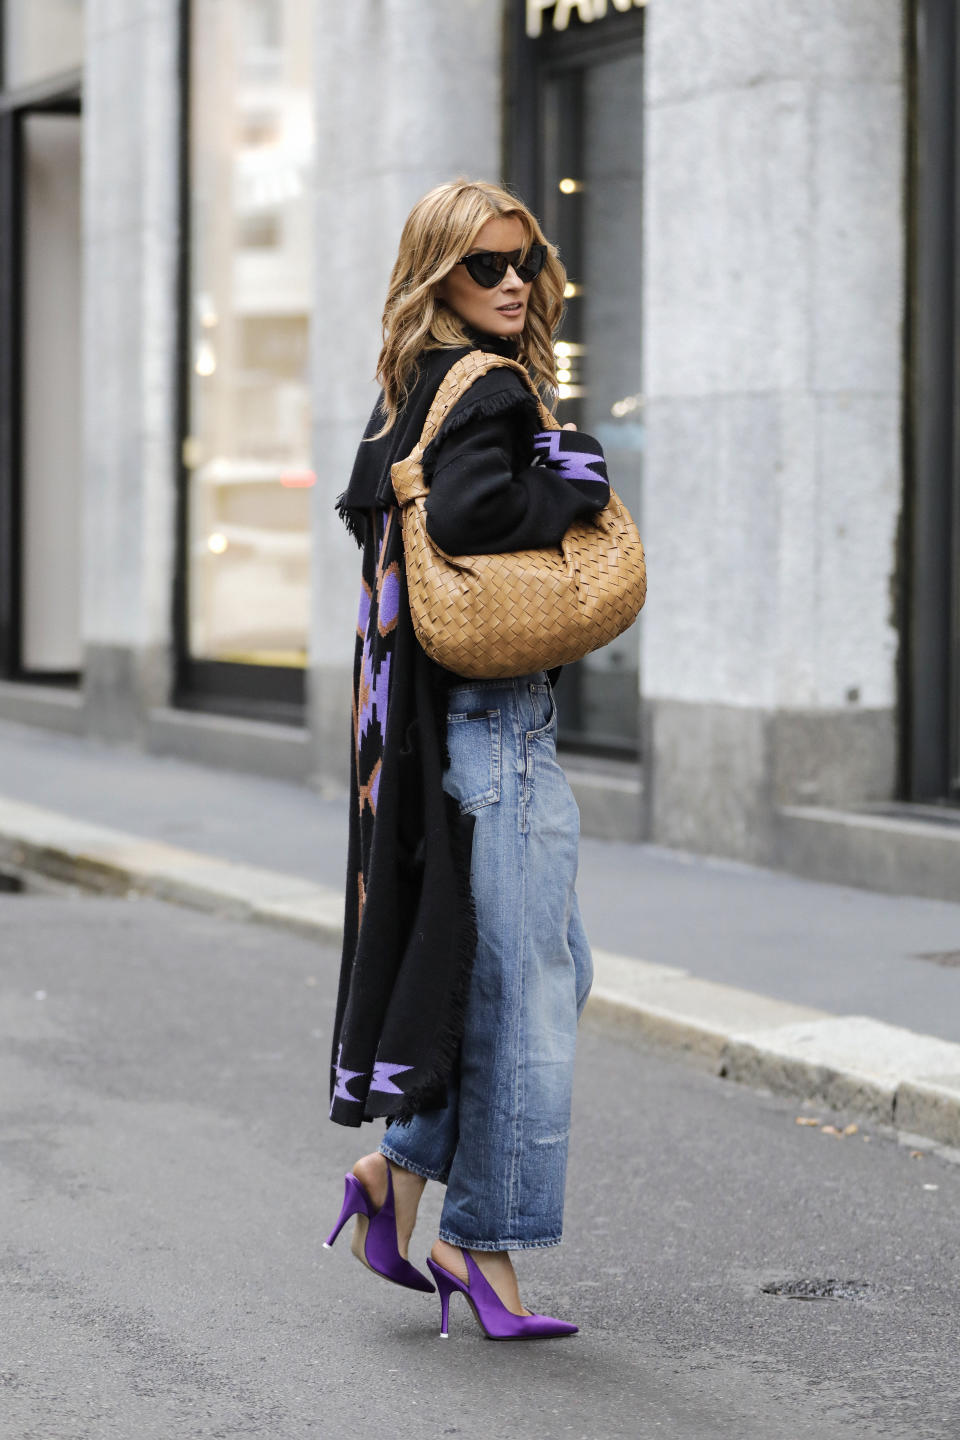 MILAN, ITALY - SEPTEMBER 25: Influencer Gitta Banko, wearing light blue baggy denim jeans by Saint Laurent, a black cashmere turtleneck sweater by Boscana, a black oversized knit coat with purple pattern on the back and cuffs by Antonia Zander, purple pumps by The Attico, sunglasses by Bottega Veneta and a camel colored Jodie bag by Bottega Veneta, is seen during the Milan Women's Fashion Week on September 25, 2020 in Milan, Italy. (Photo by Streetstyleshooters/Getty Images)